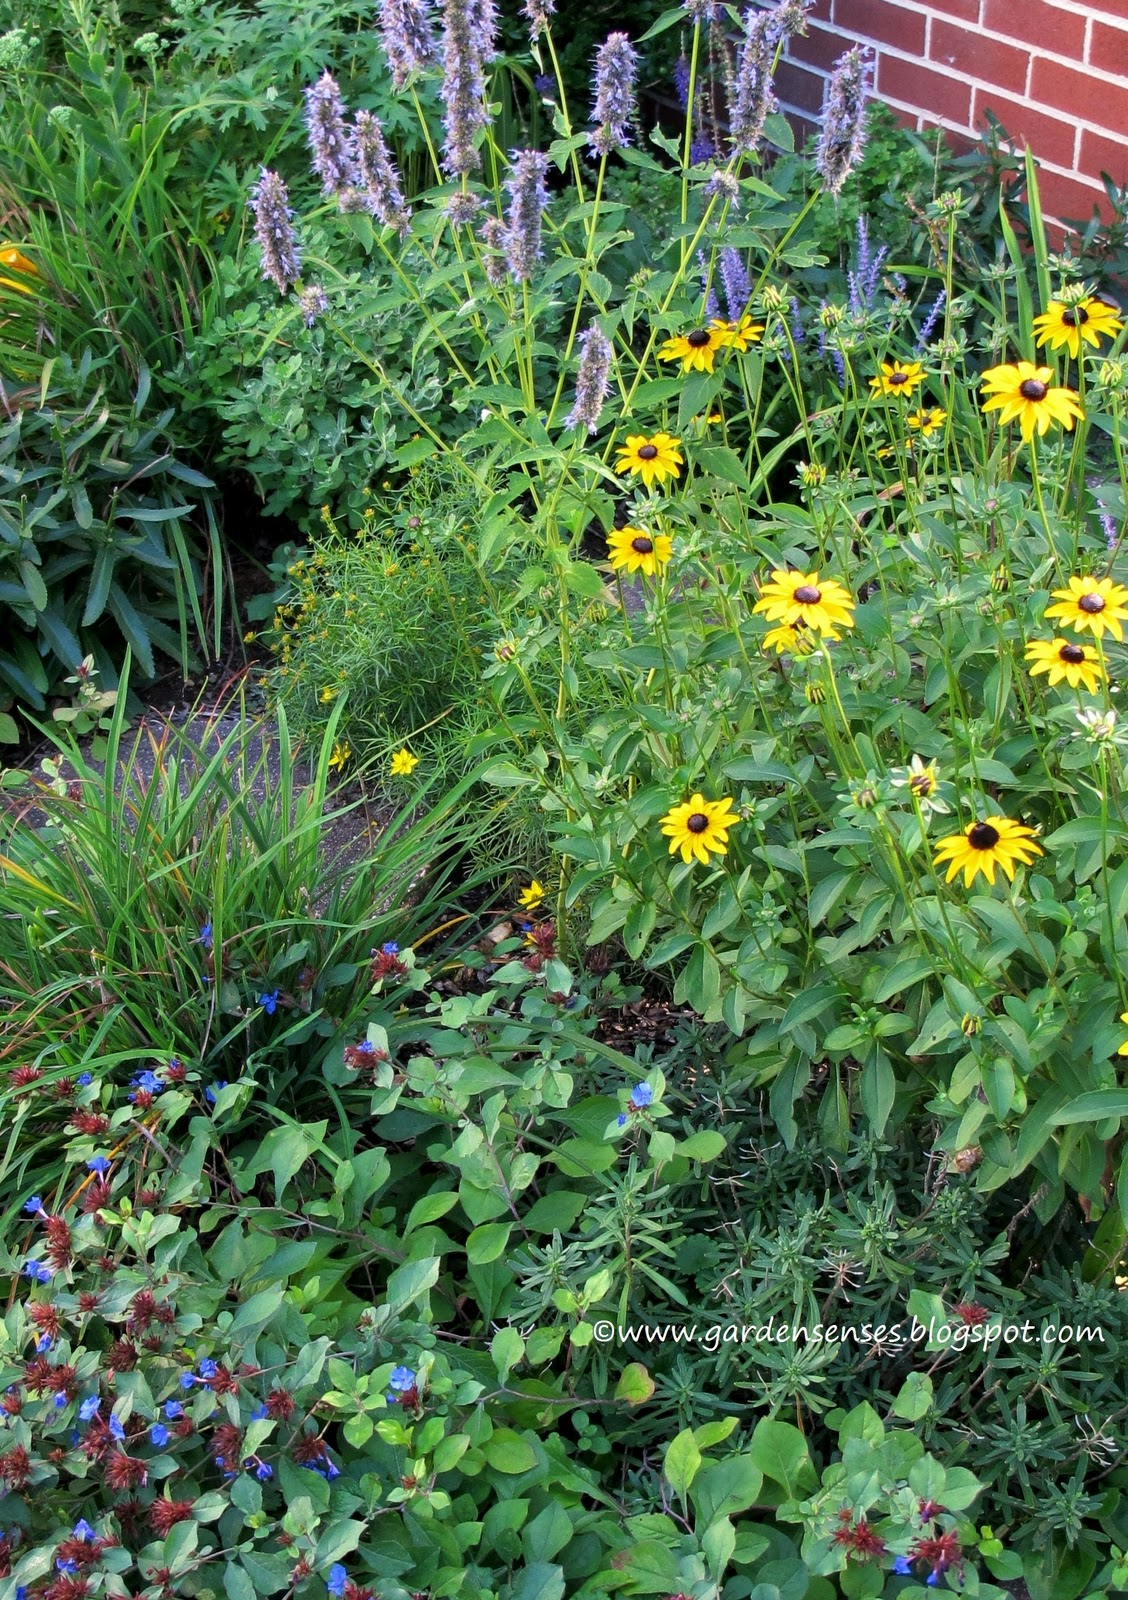 Garden Sense Late Summer Combinations Iii